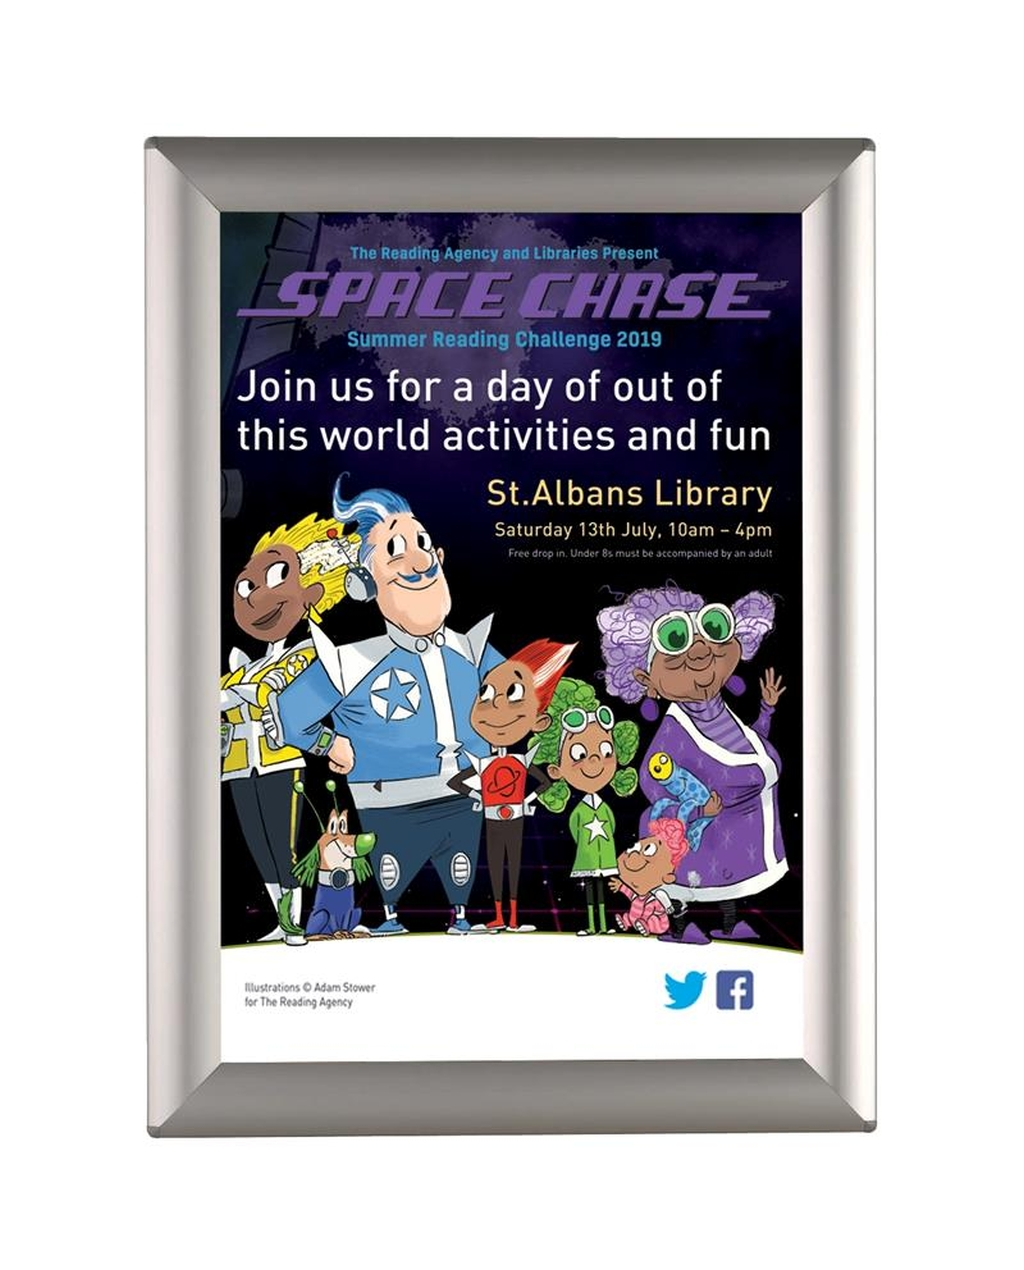 Busygrip Alu Poster Frame A4 297 X 210